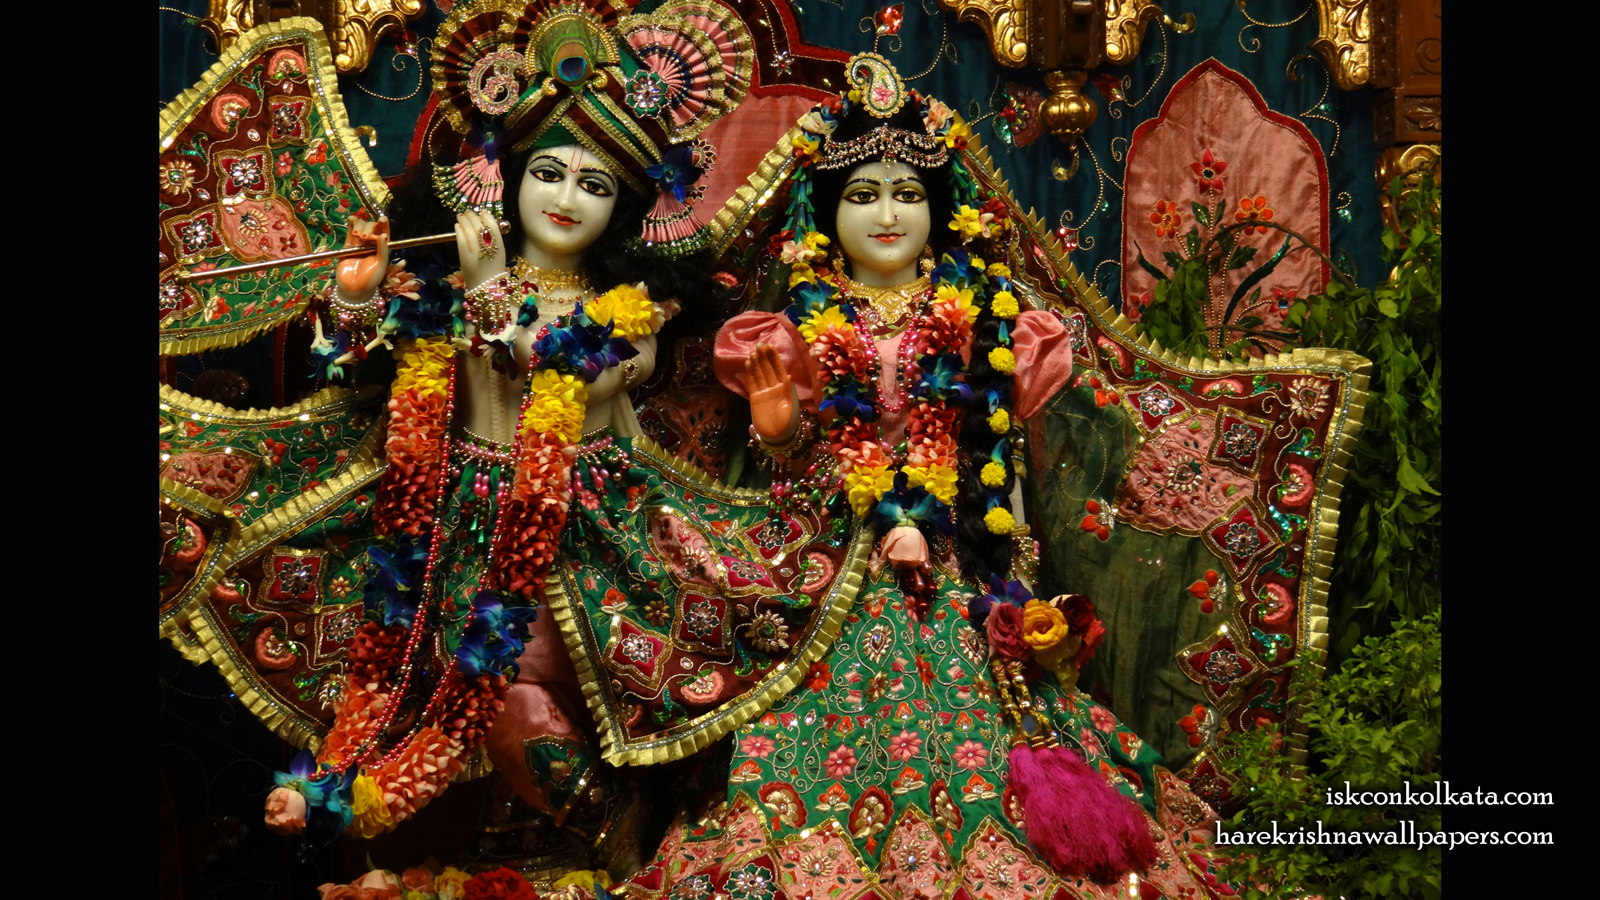 Sri Sri Radha Govinda Wallpaper (005) Size 1600x900 Download